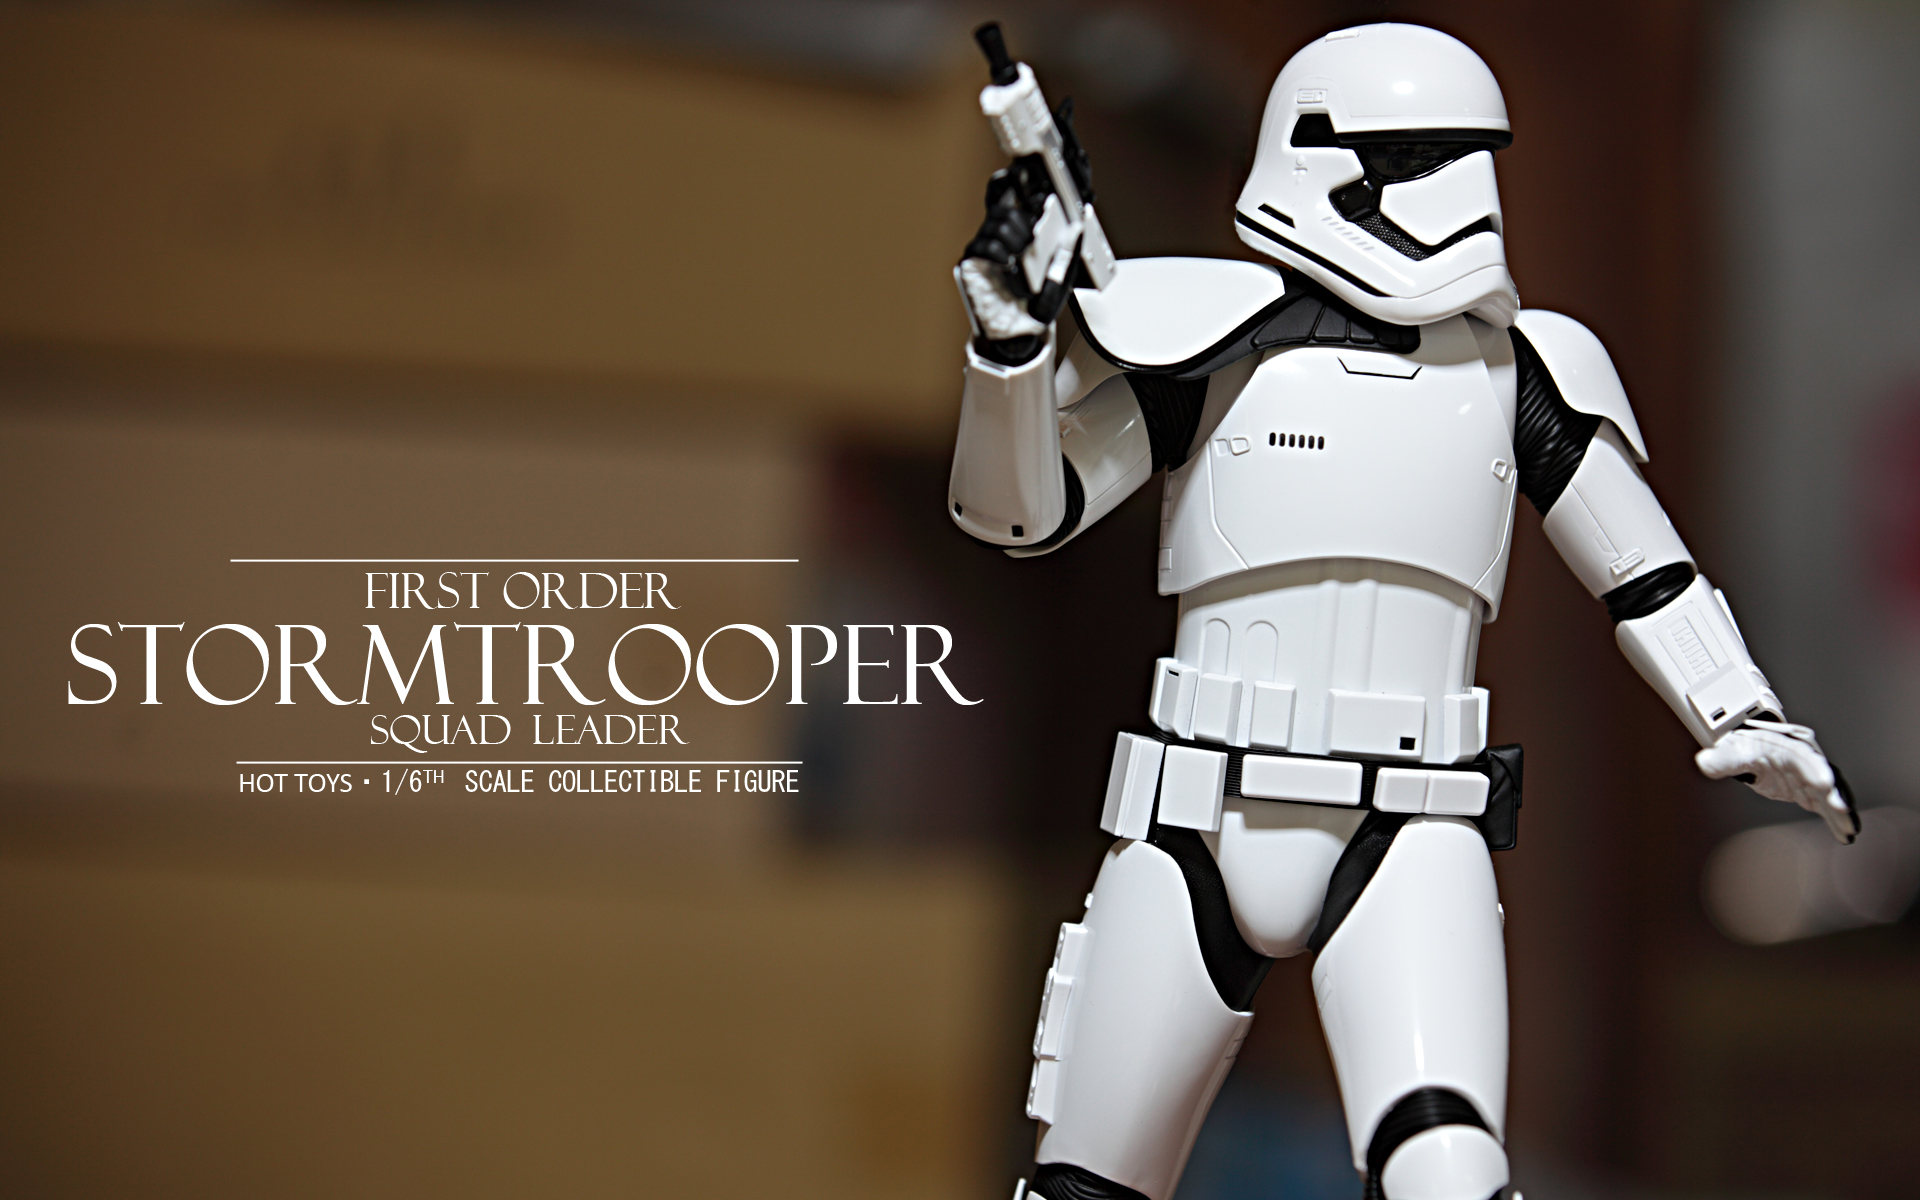 hottoys-star-wars-the-force-awakens-first-order-stormtrooper-Squad-Leader-picture01hottoys-star-wars-the-force-awakens-first-order-stormtrooper-Squad-Leader-picture09